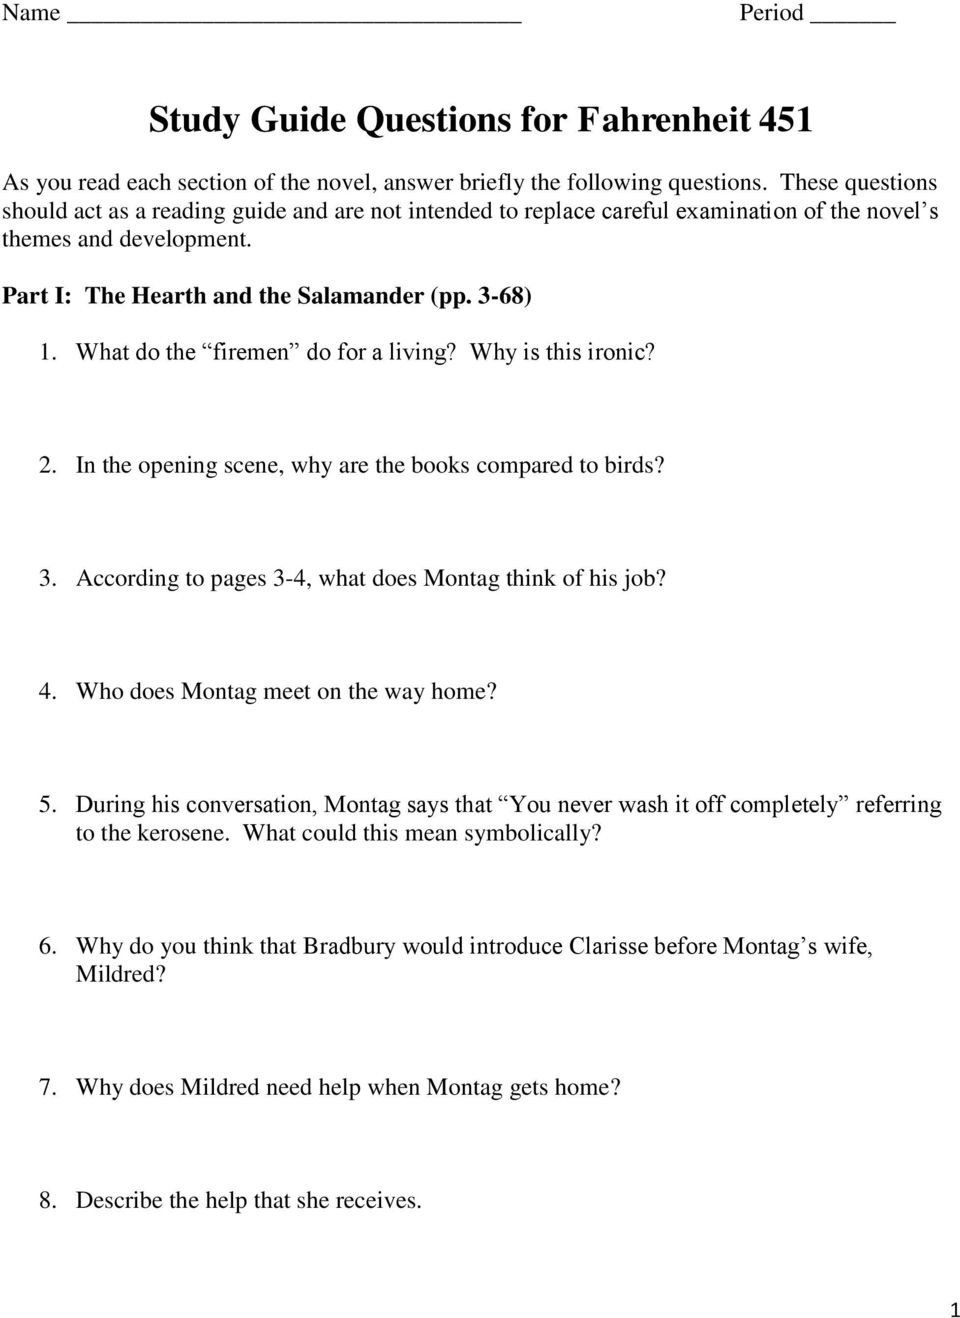 study guide questions for fahrenheit pdf what do the firemen do for a living why is this ironic 2